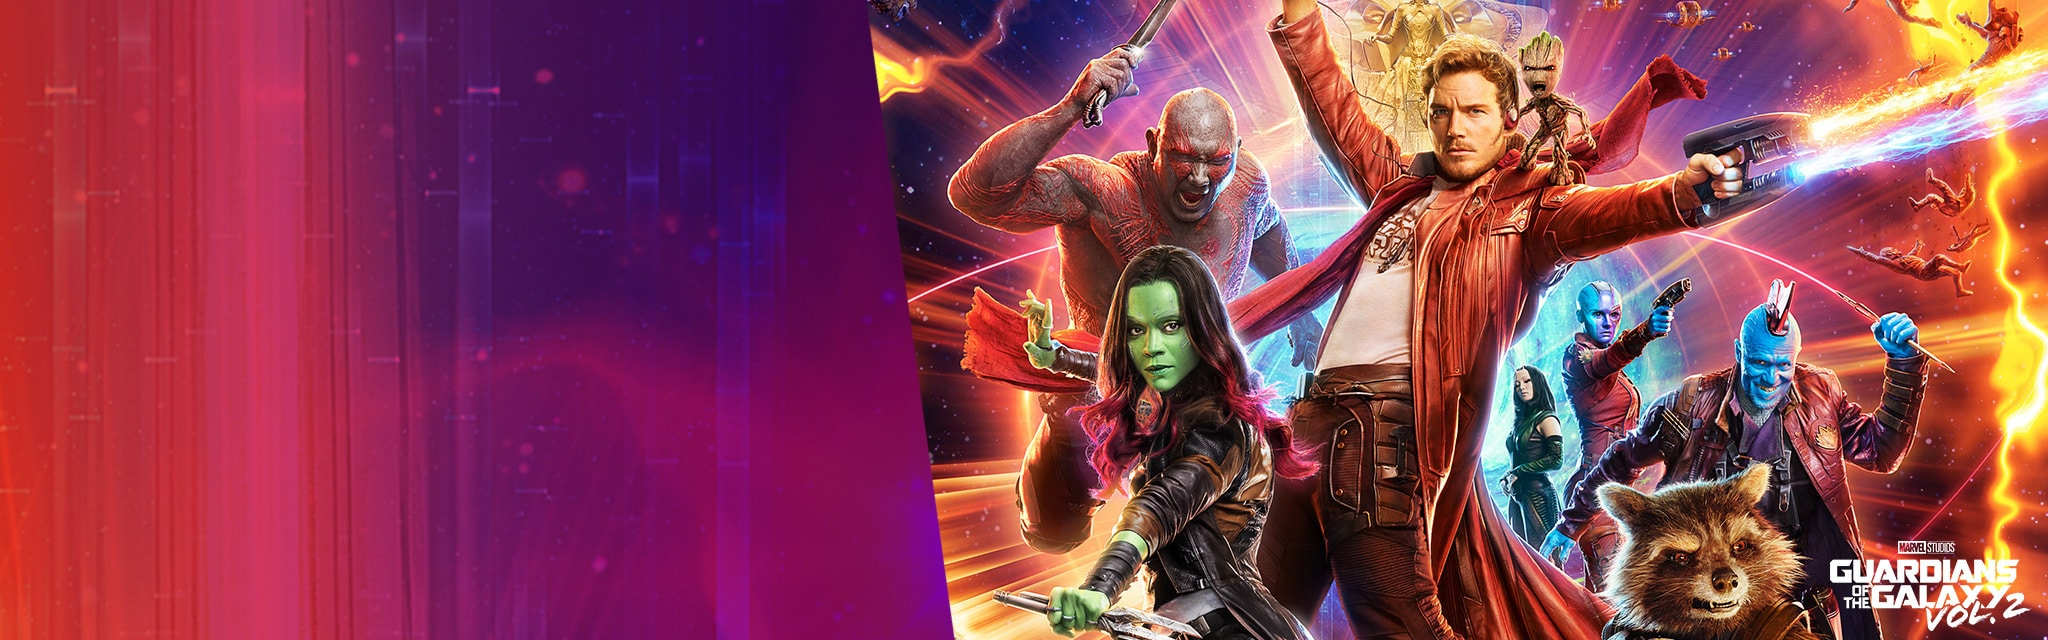 "Guardians of the Galaxy ""In Cinemas"" Hero - TH"